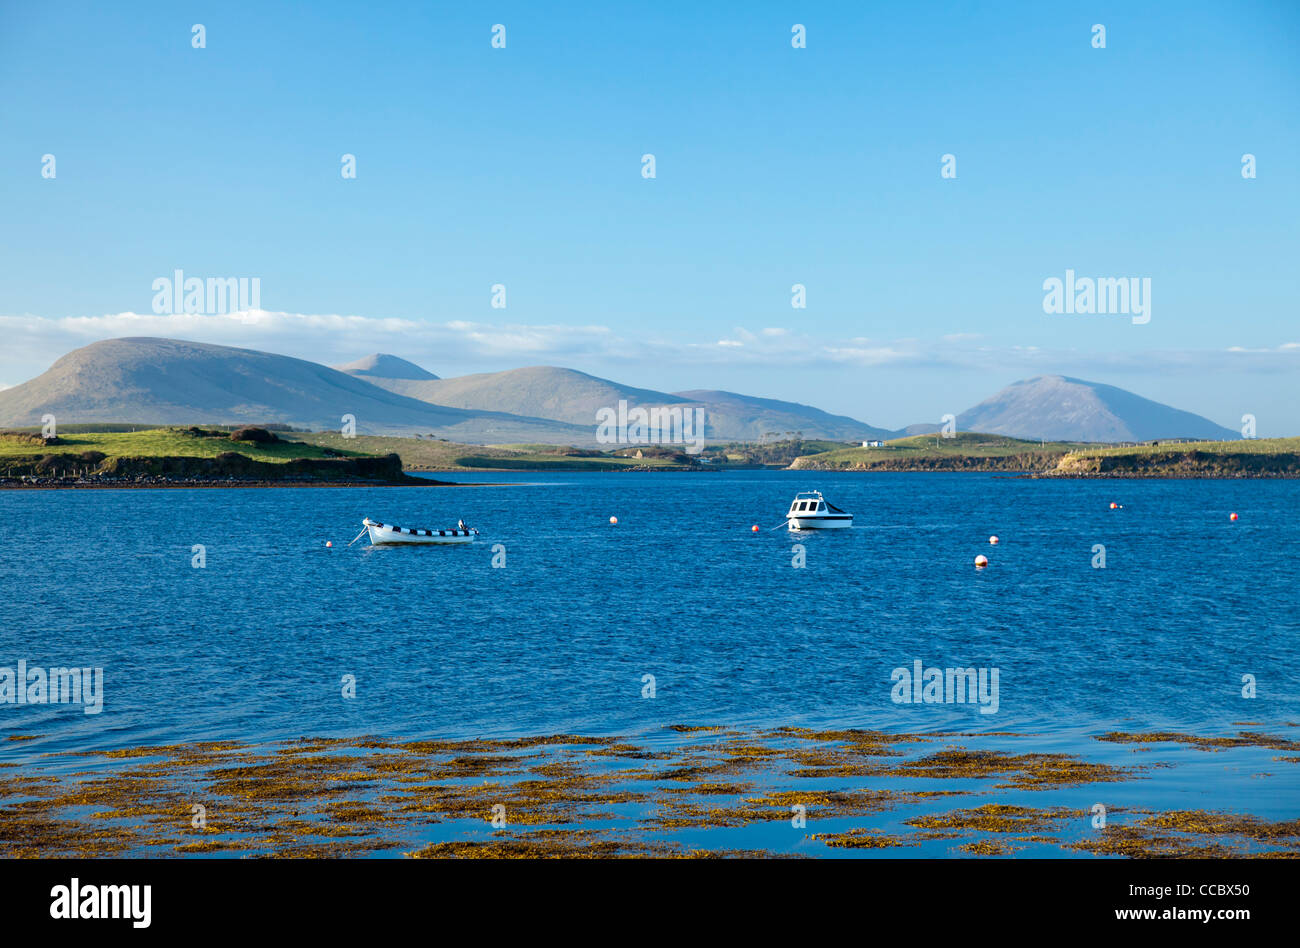 View across Clew Bay to Croagh Patrick, County Mayo, Ireland. - Stock Image